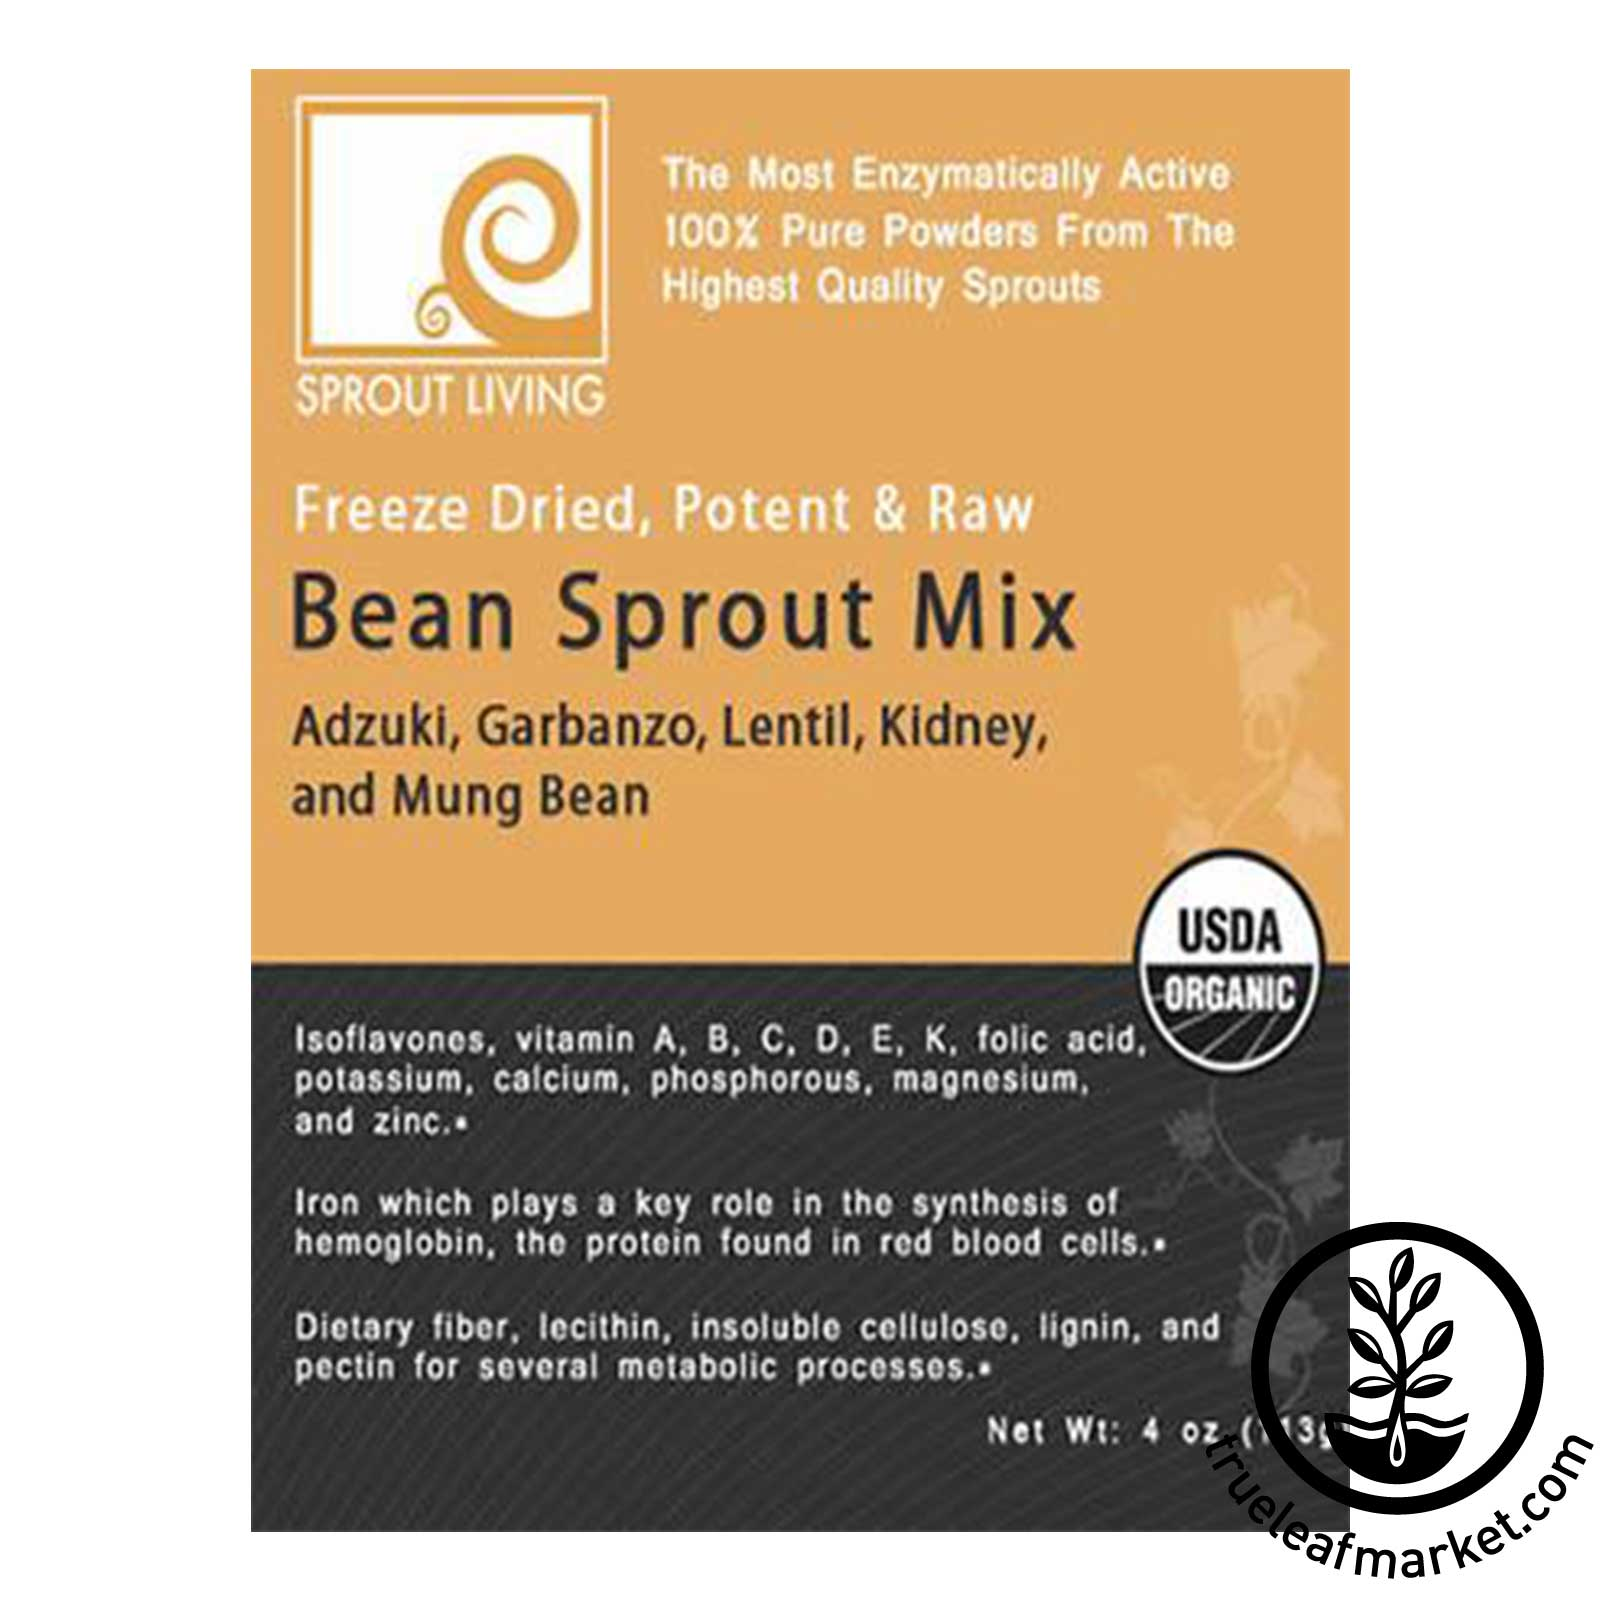 Bean Sprout Powder Mix by Sprout Living - Front Label